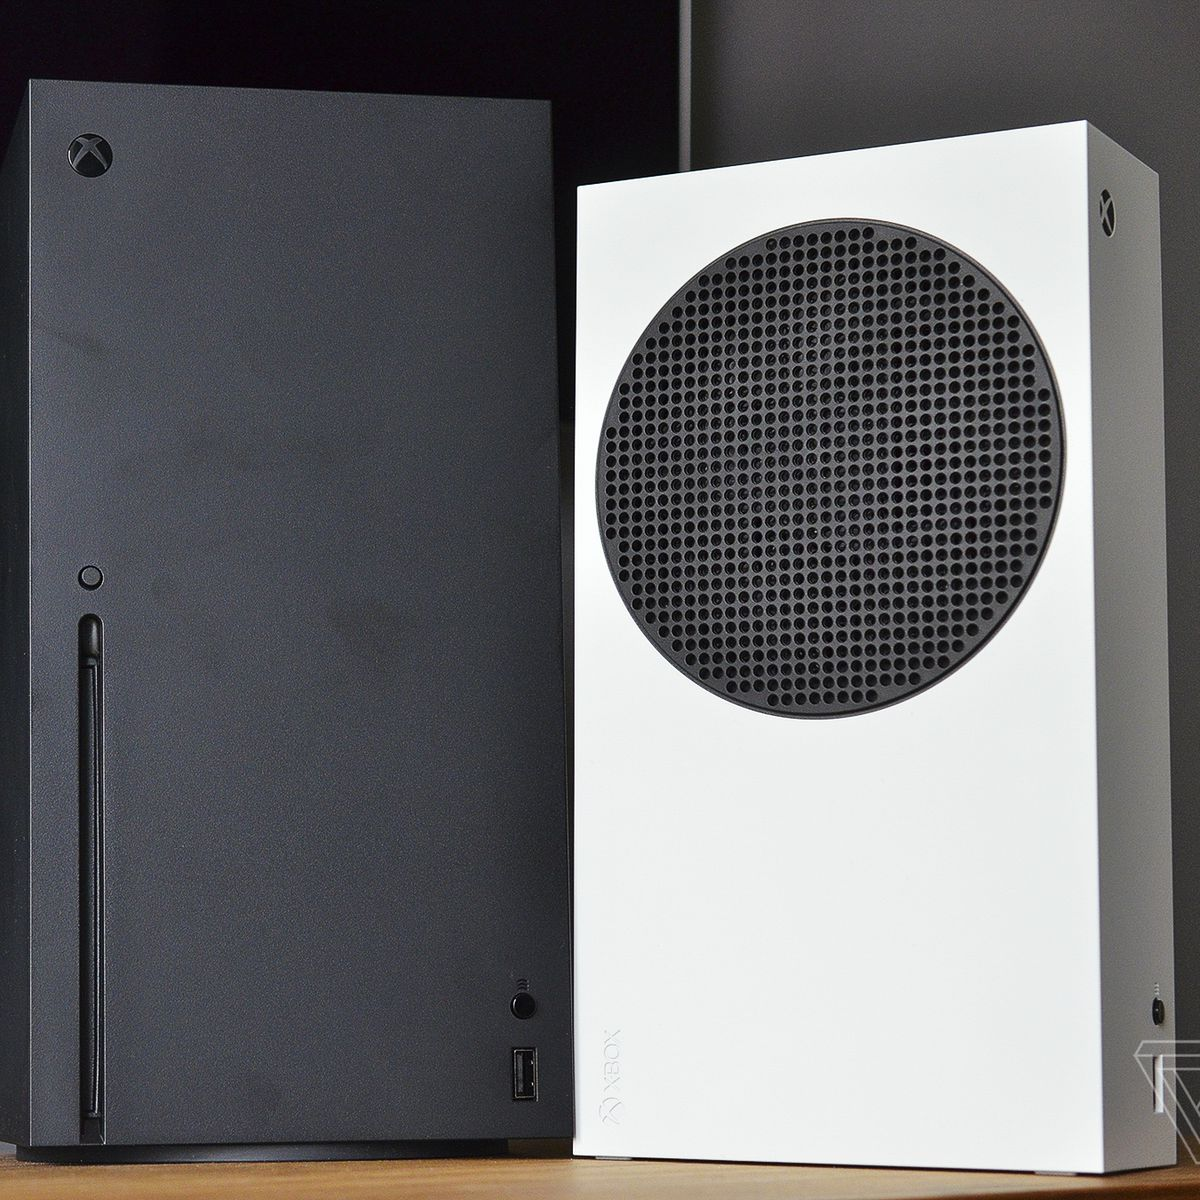 Walmart will have the Xbox Series X / S available at 3PM ET today